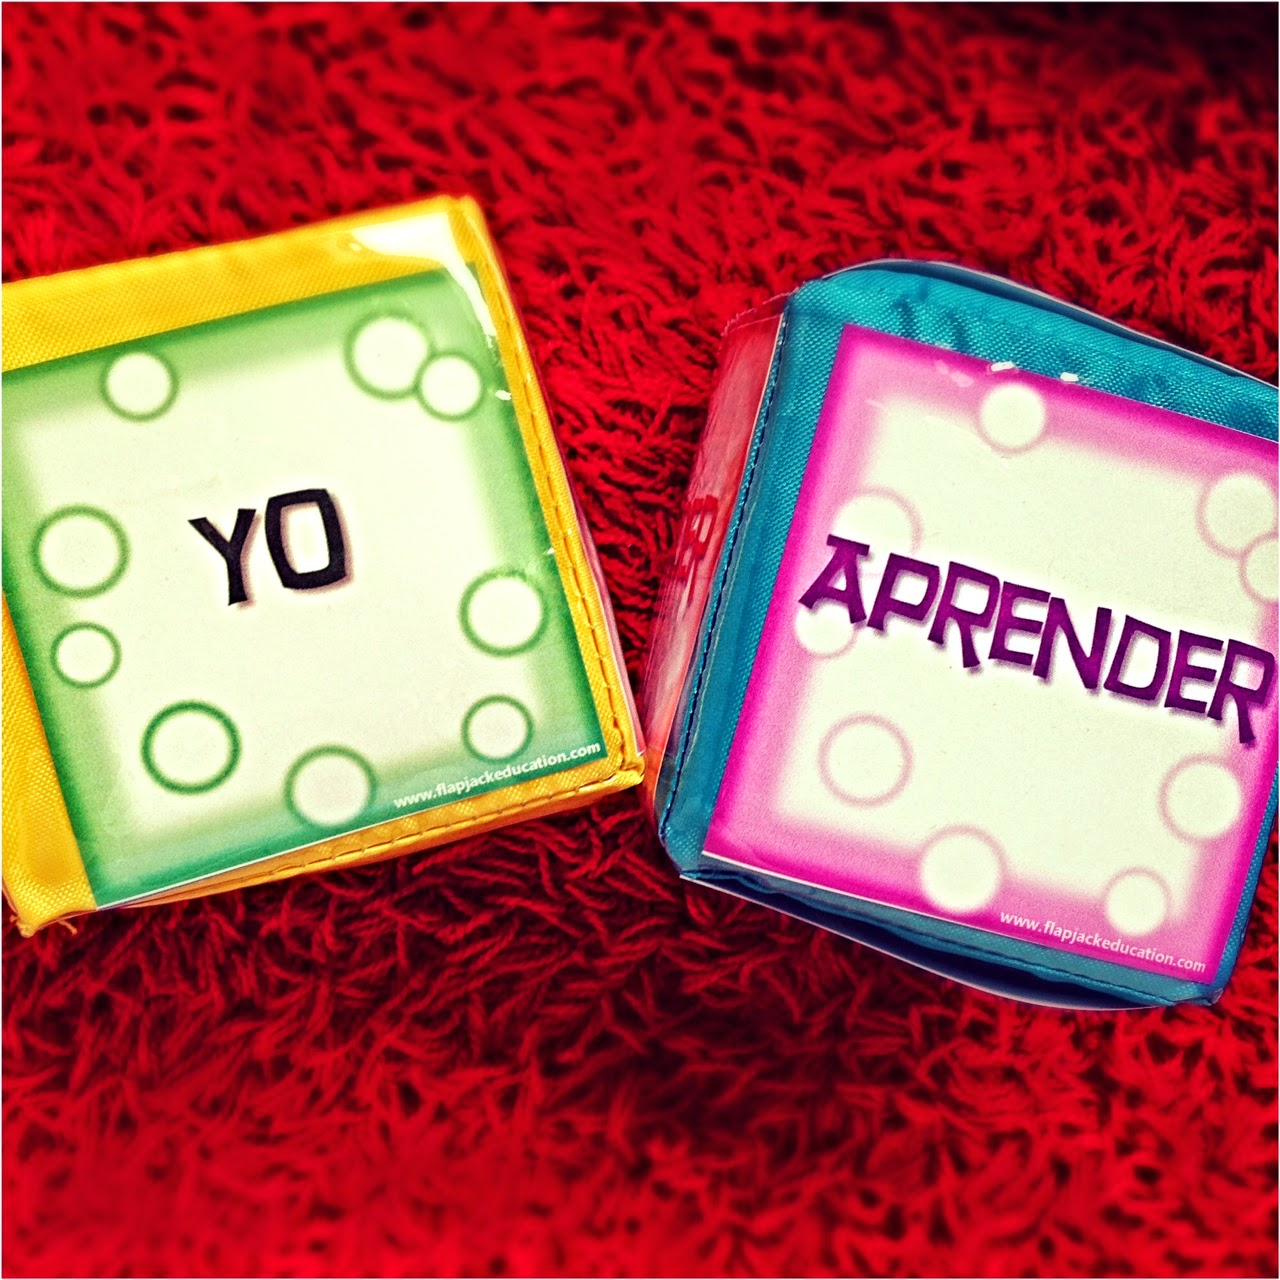 http://www.teacherspayteachers.com/Product/Ar-Er-Ir-Spanish-Verbs-Pocket-Cubes-FREEBIE-1230370